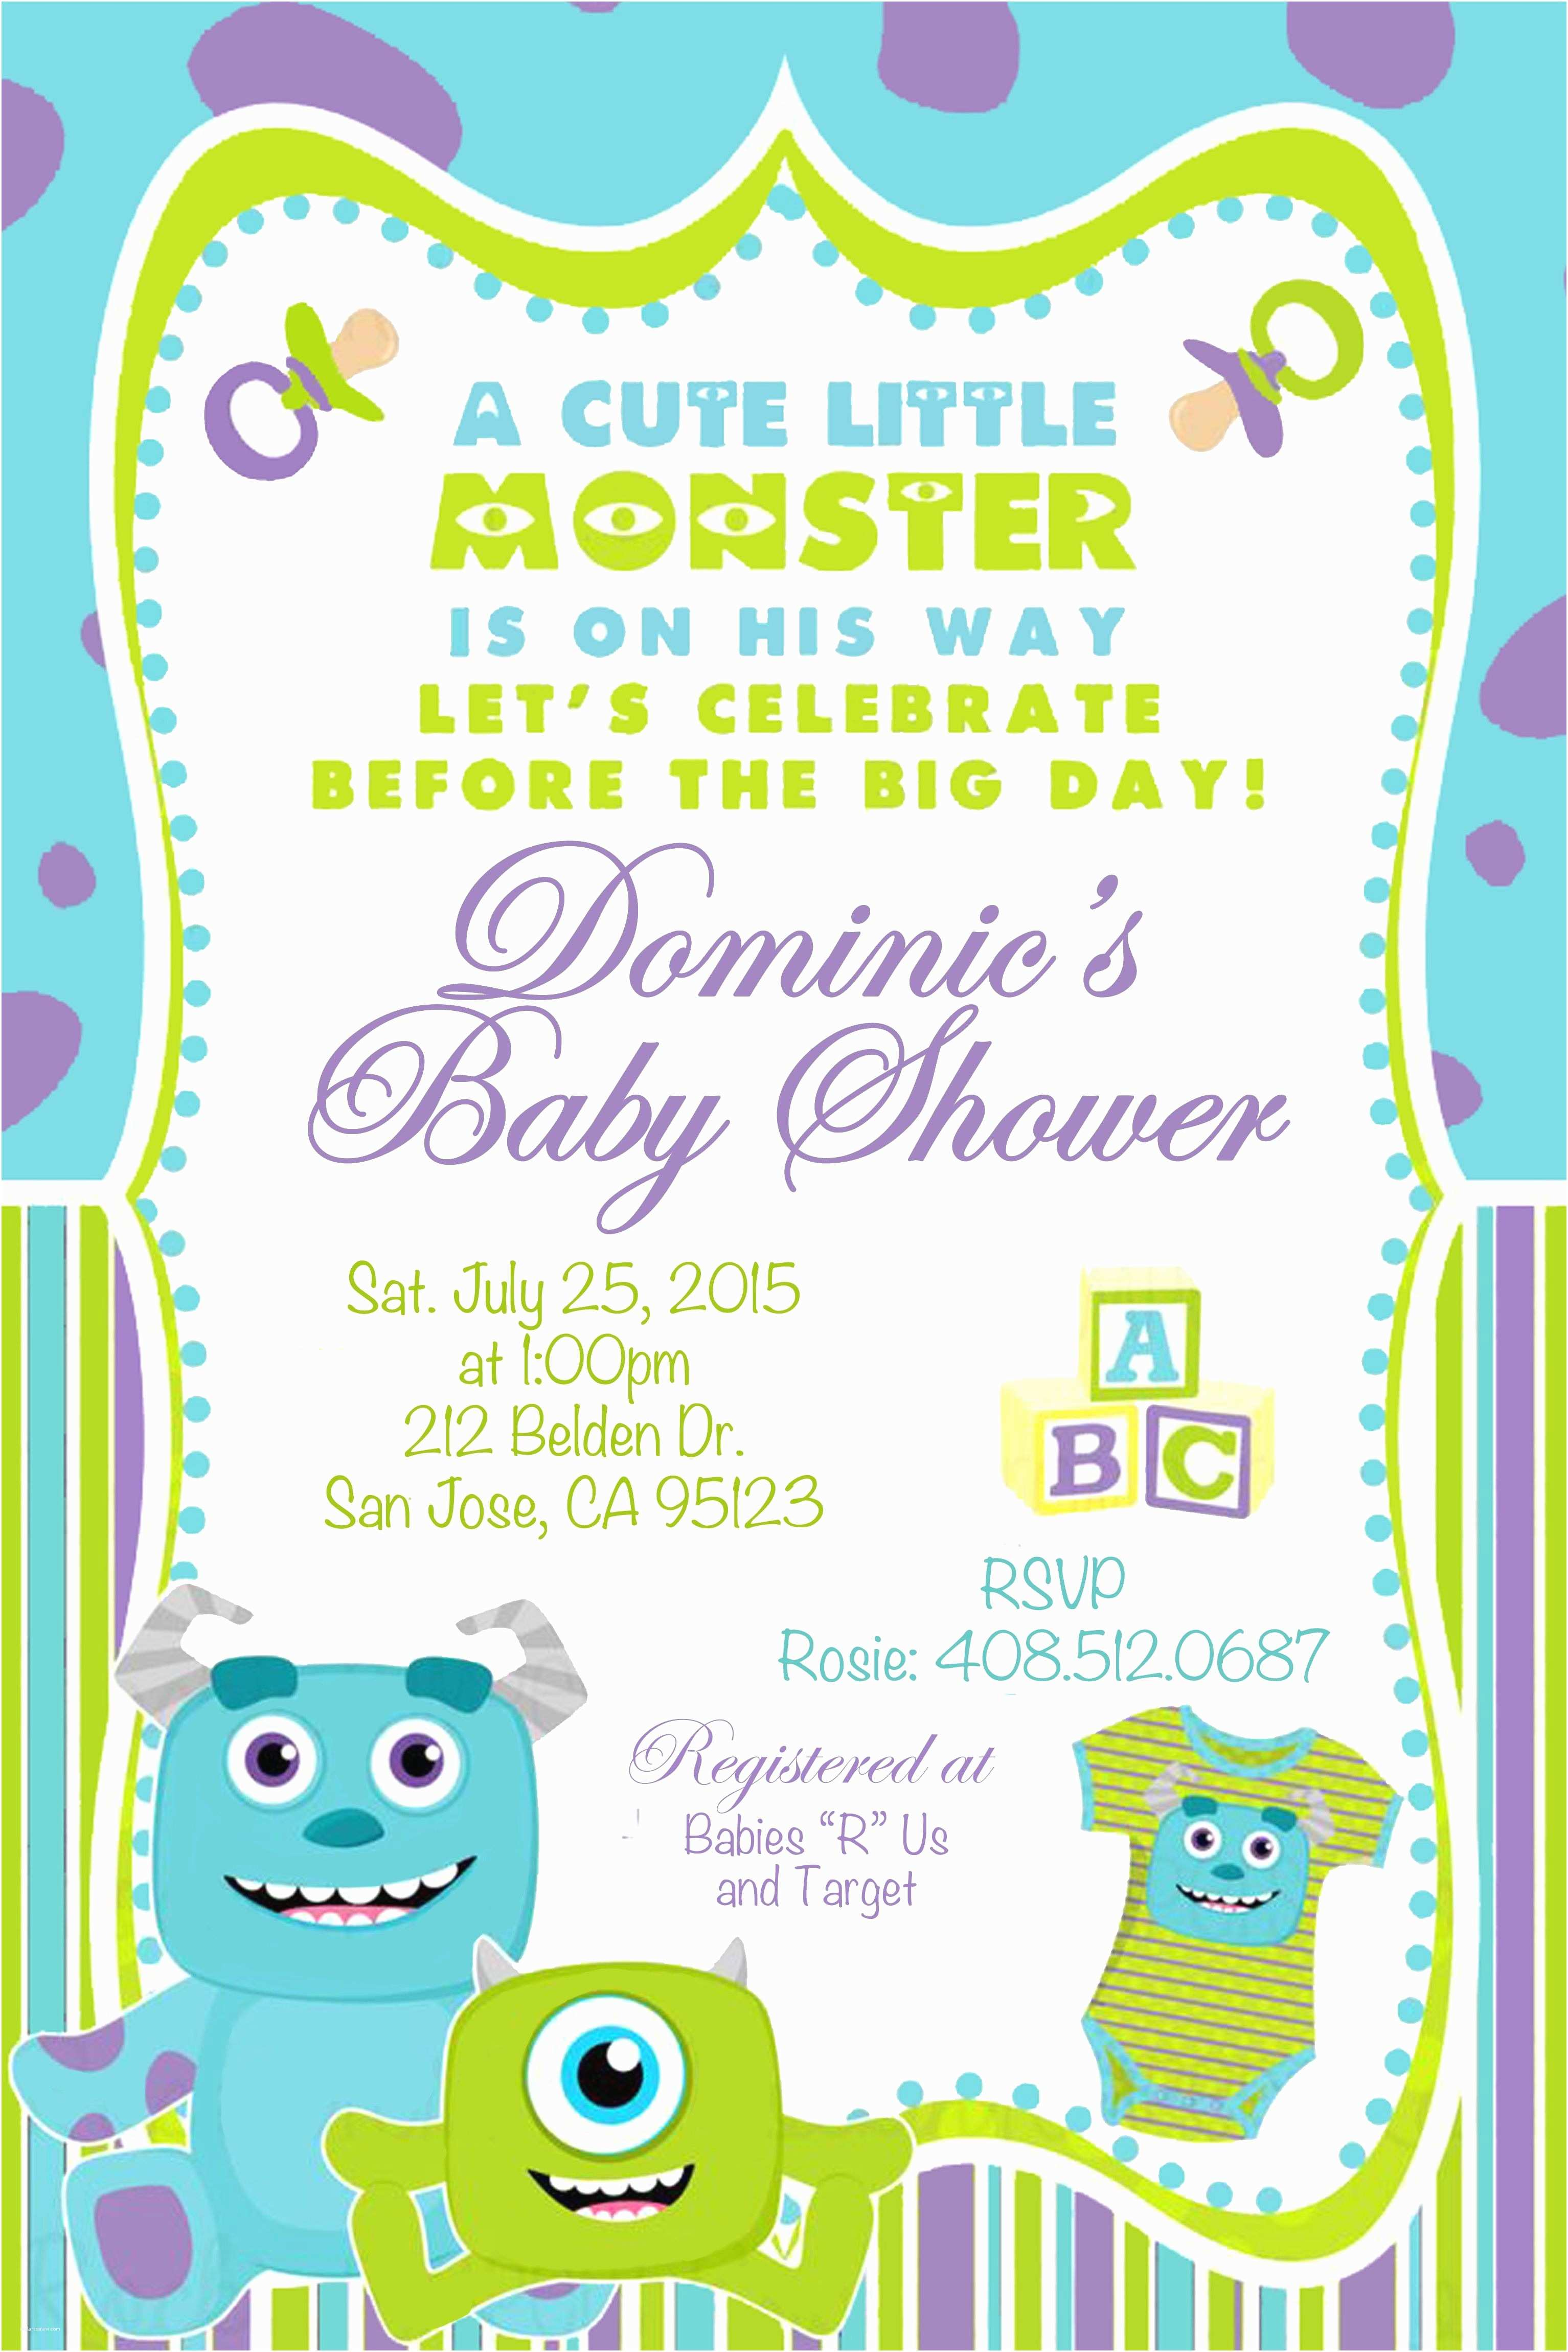 Monsters Inc Baby Shower Invitations Monsters Inc Baby Shower Invitation for Custom orders